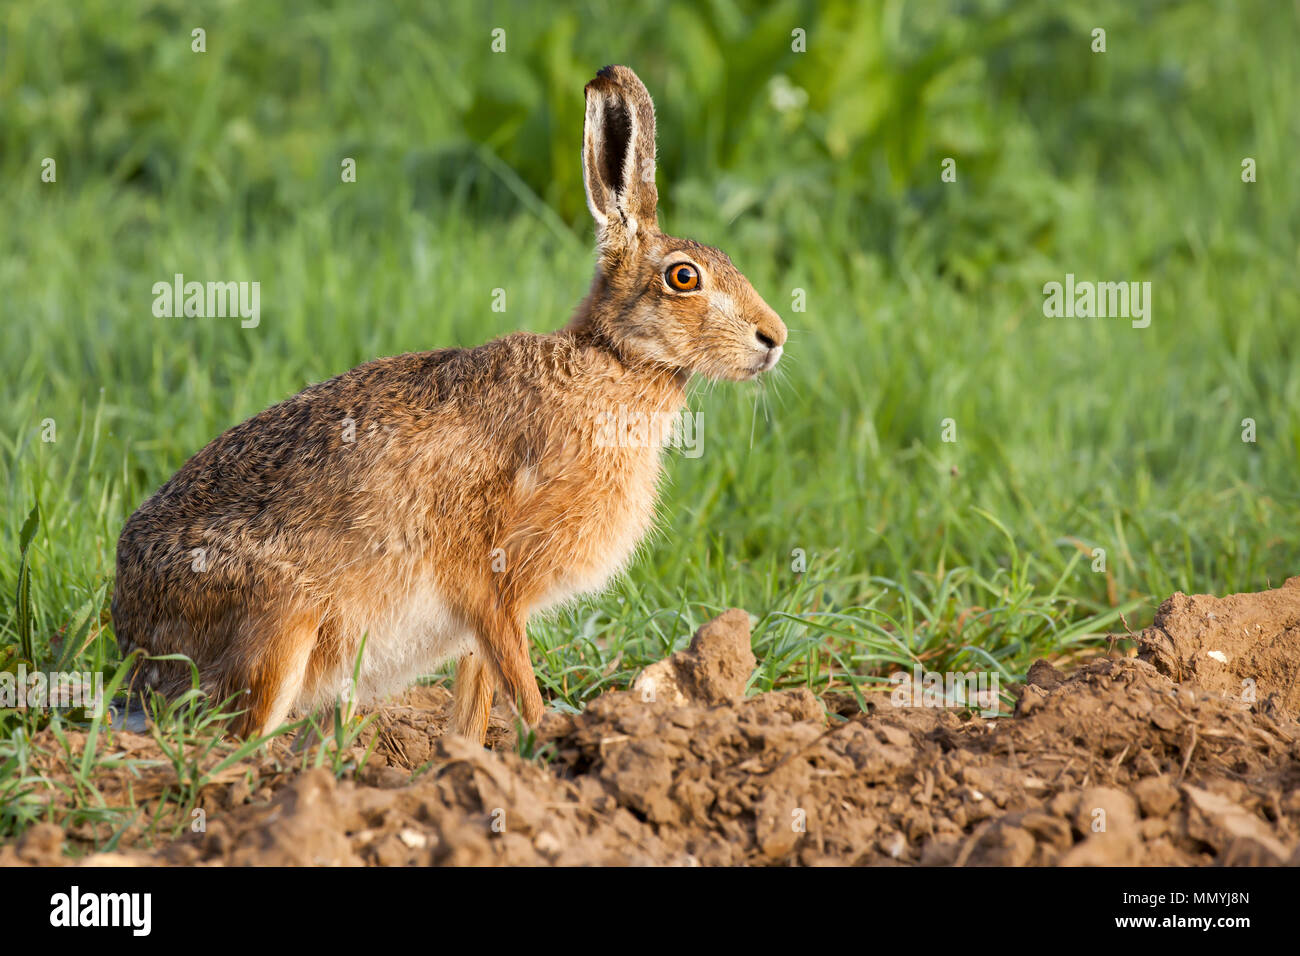 Wild hare portrait close up. Animal poised on the edge of a crop field staring with his bright yellow amber large eyes - Stock Image